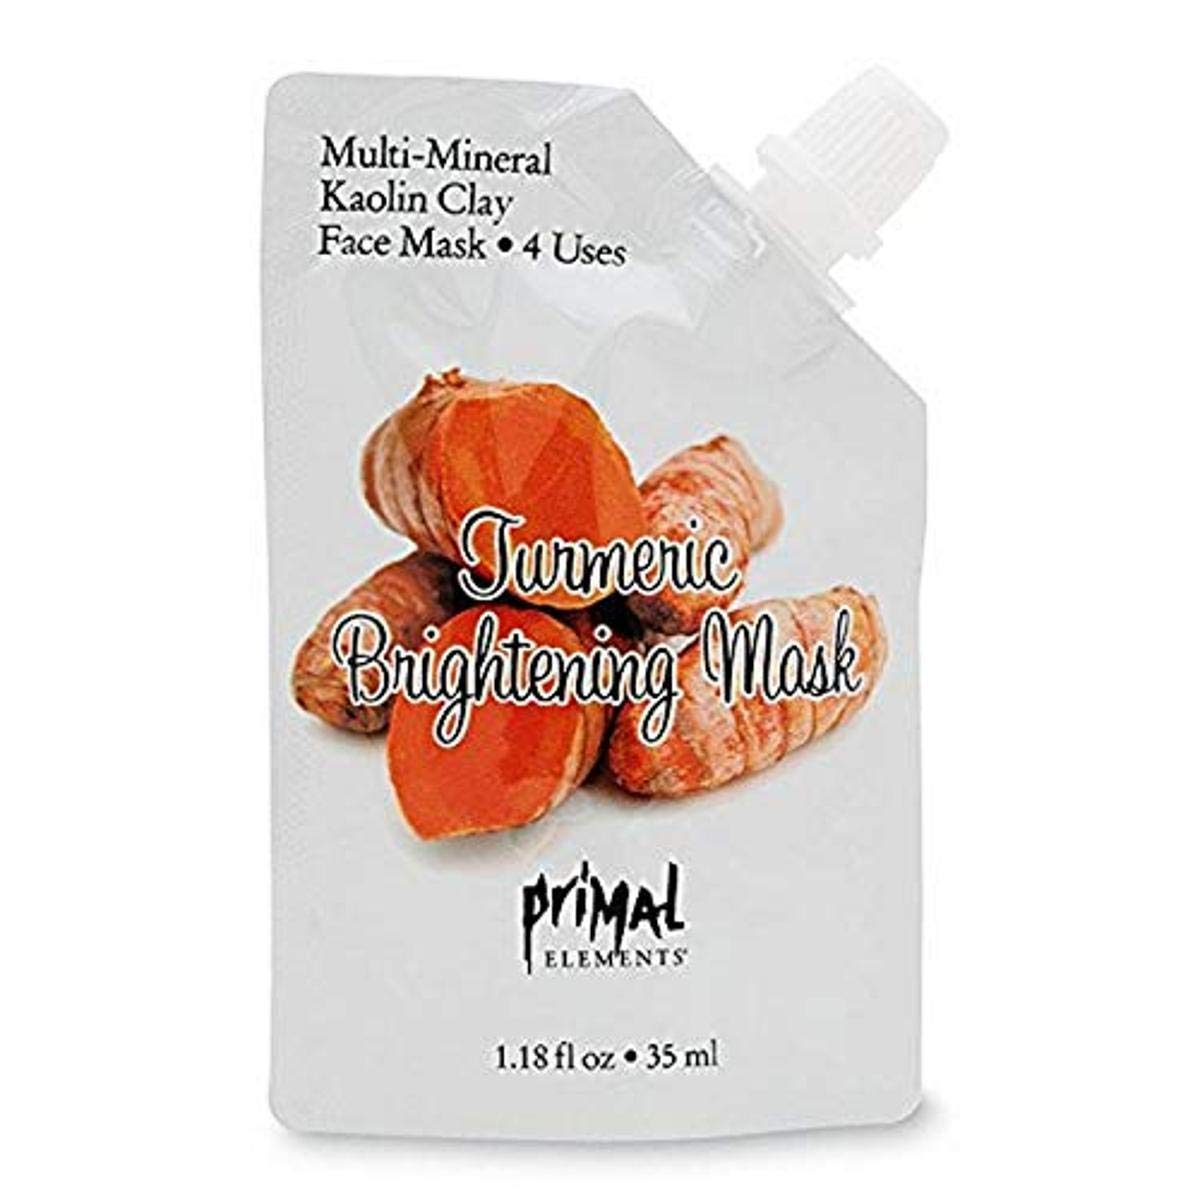 Primal Elements Face Mask, Clay Mud Facial Treatment, Reduce Pores & Treat Blackheads, Multi-Use Package, 1.18 oz - Turmeric Brightening